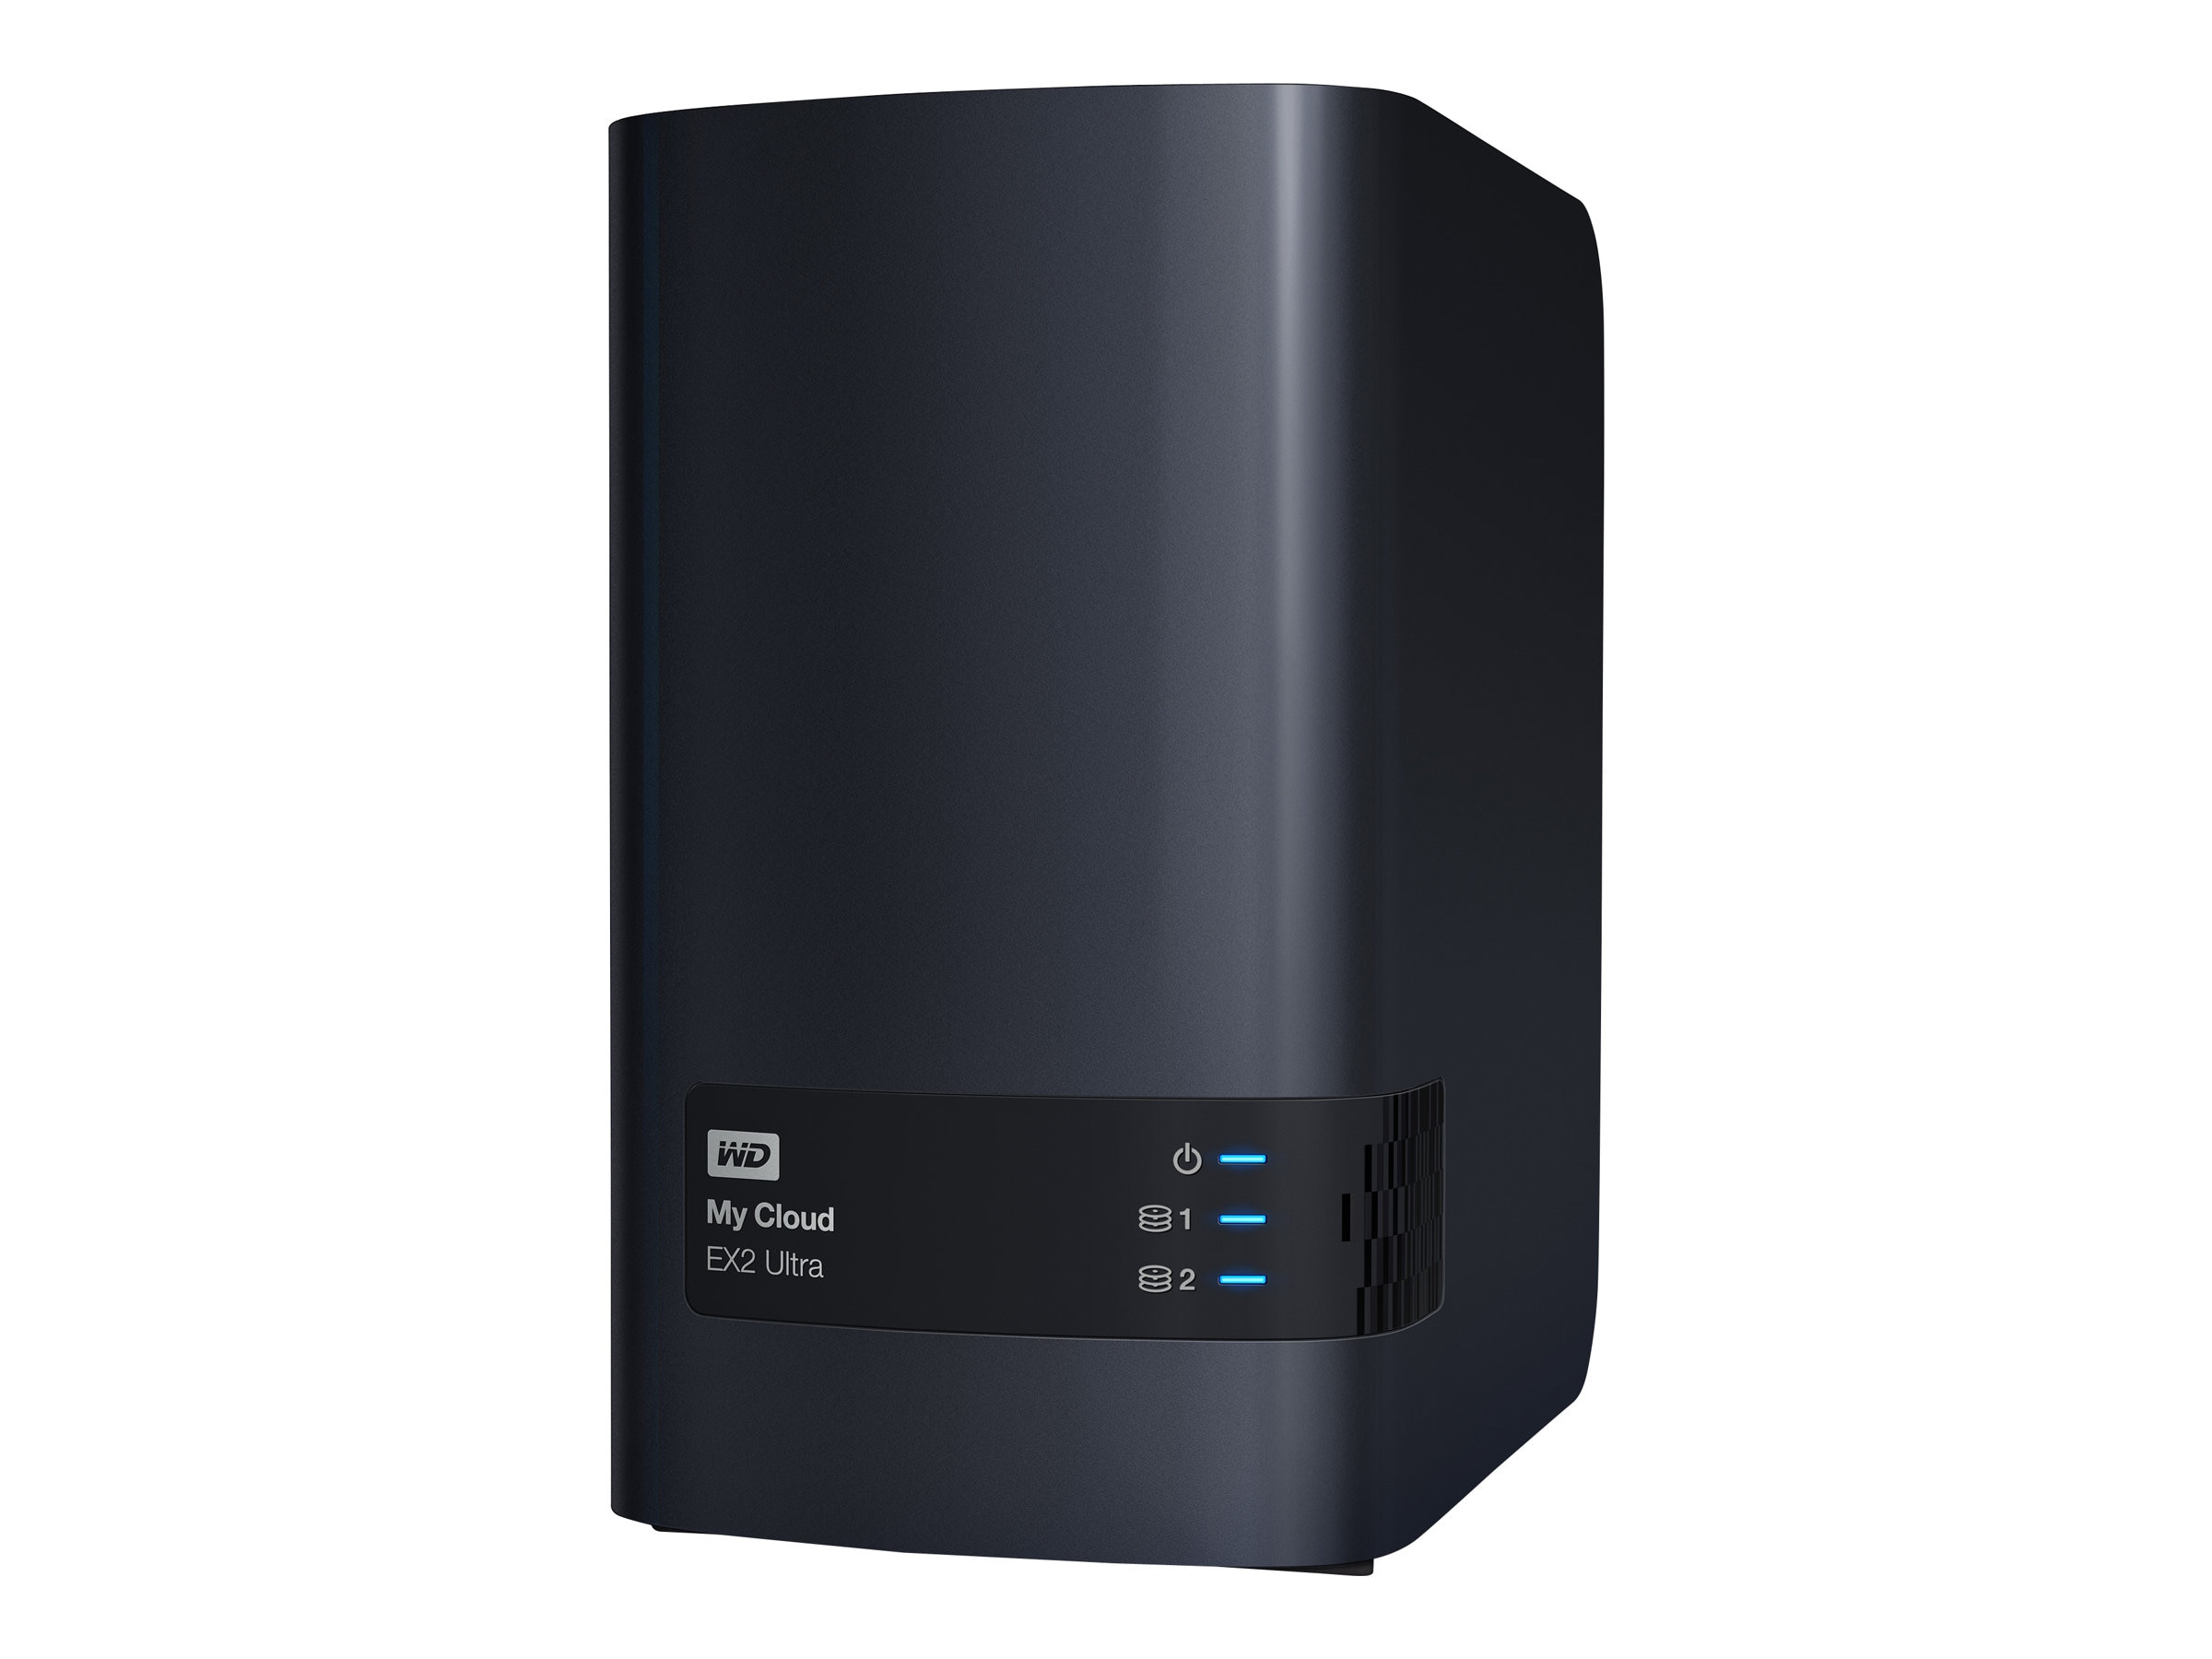 WD 8TB WD My Cloud EX2 Ultra Private Cloud NAS Storage, WDBVBZ0080JCH